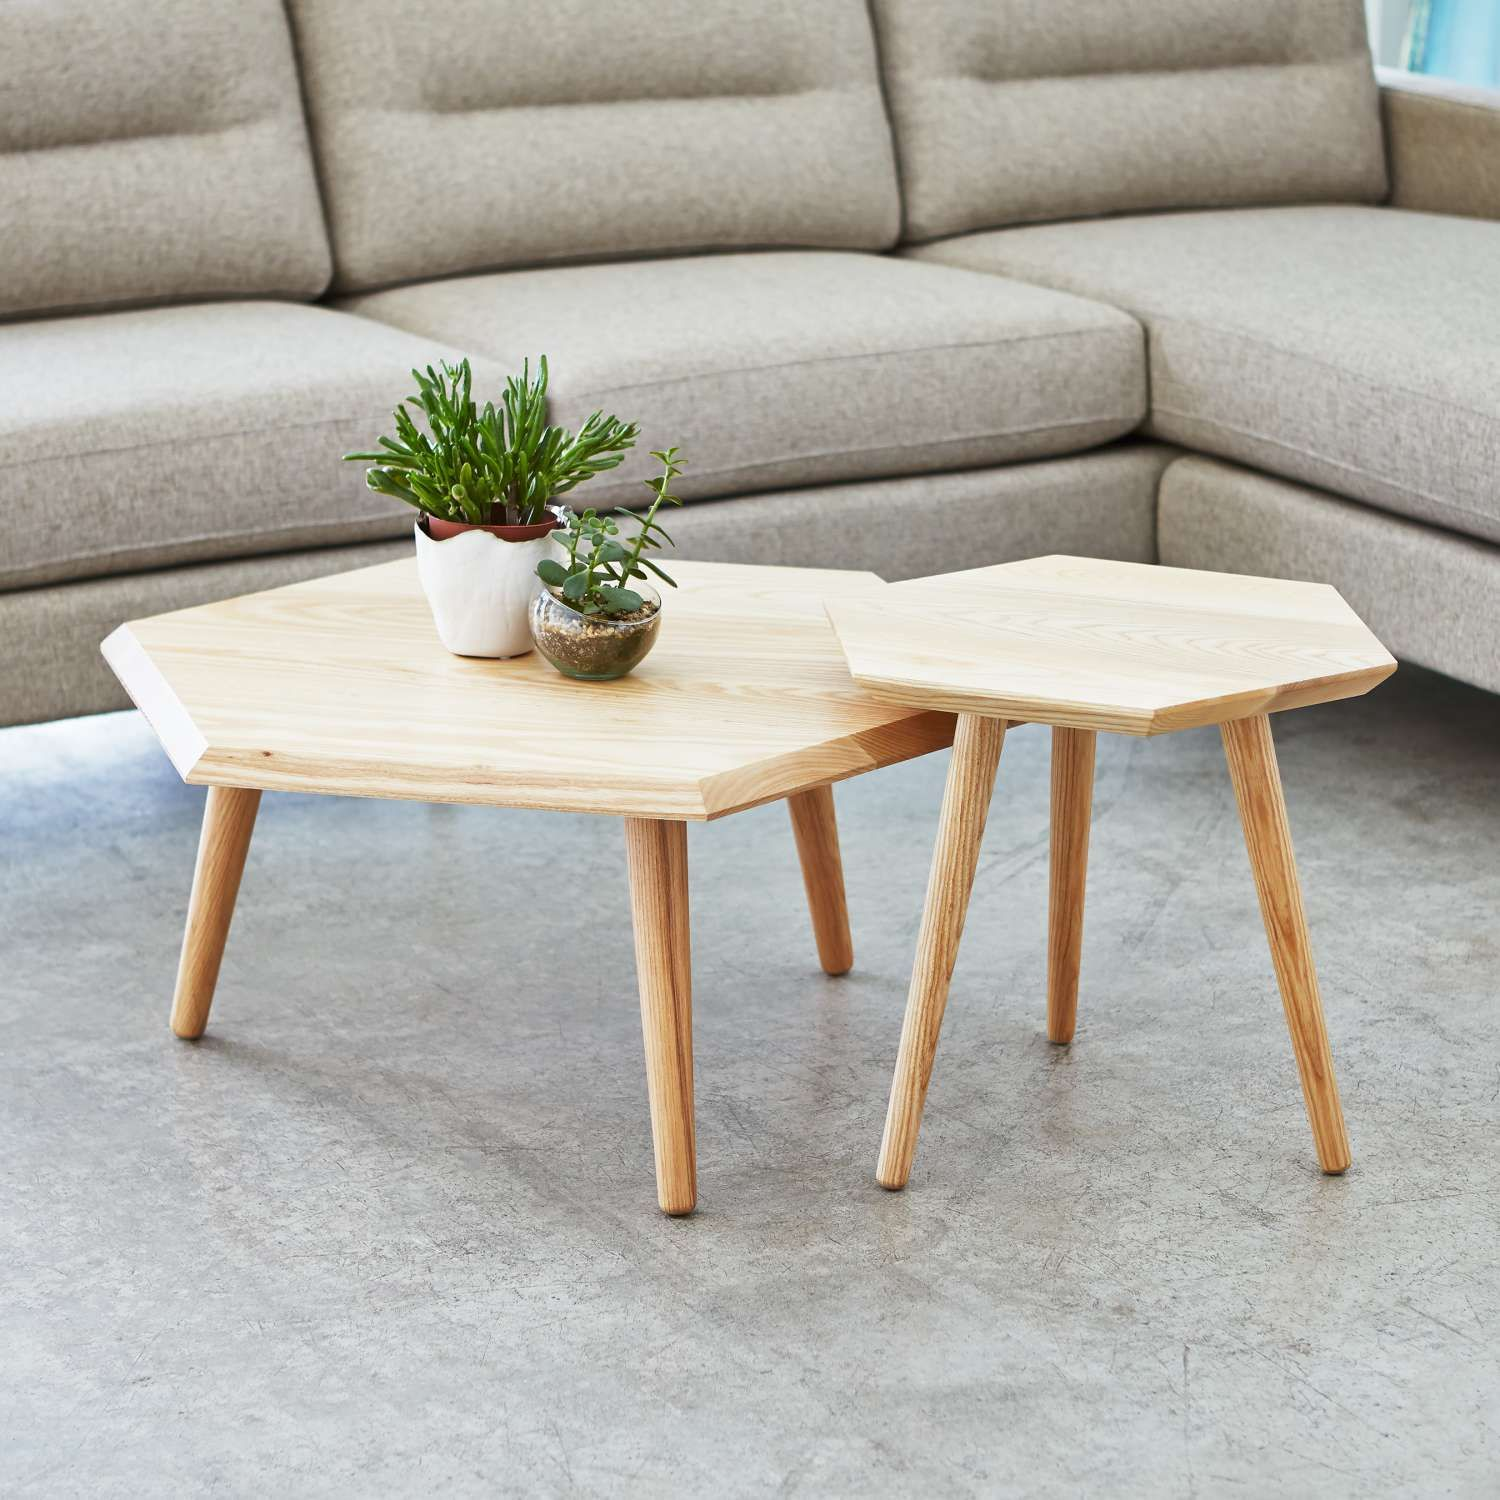 Ash In Use With Metric End Table Hexagon Coffee Table Coffee Table Wooden Coffee Table [ 1500 x 1500 Pixel ]